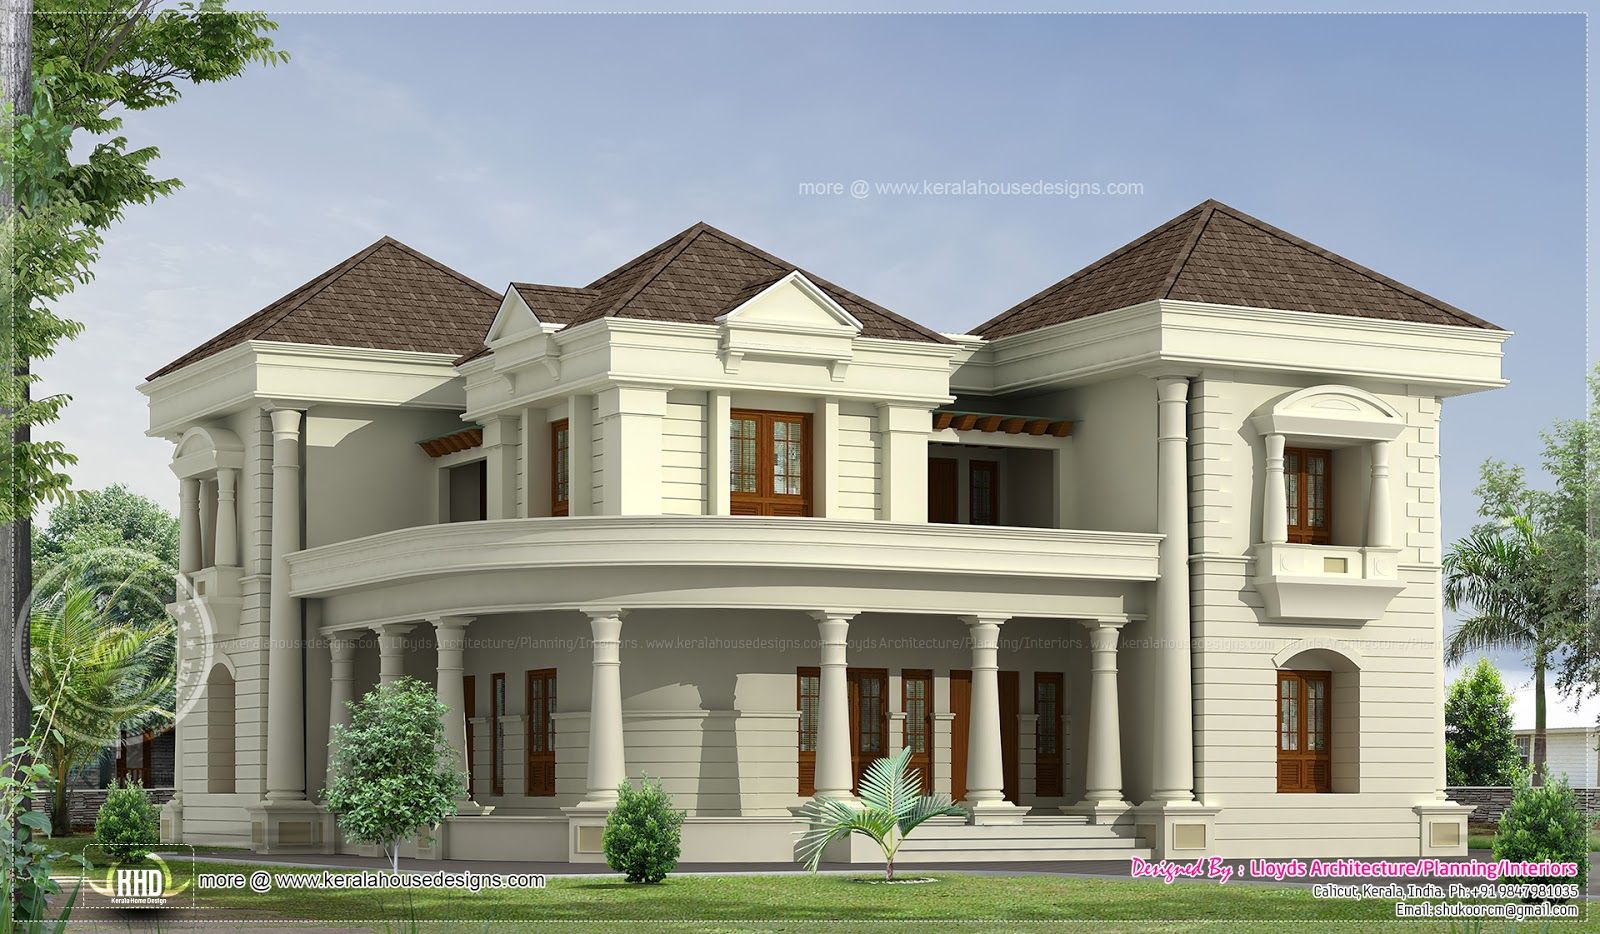 5 Bedroom Luxurious Bungalow Floor Plan And 3d View Bungalow Floor Plans Philippines House Design Bungalow Style House